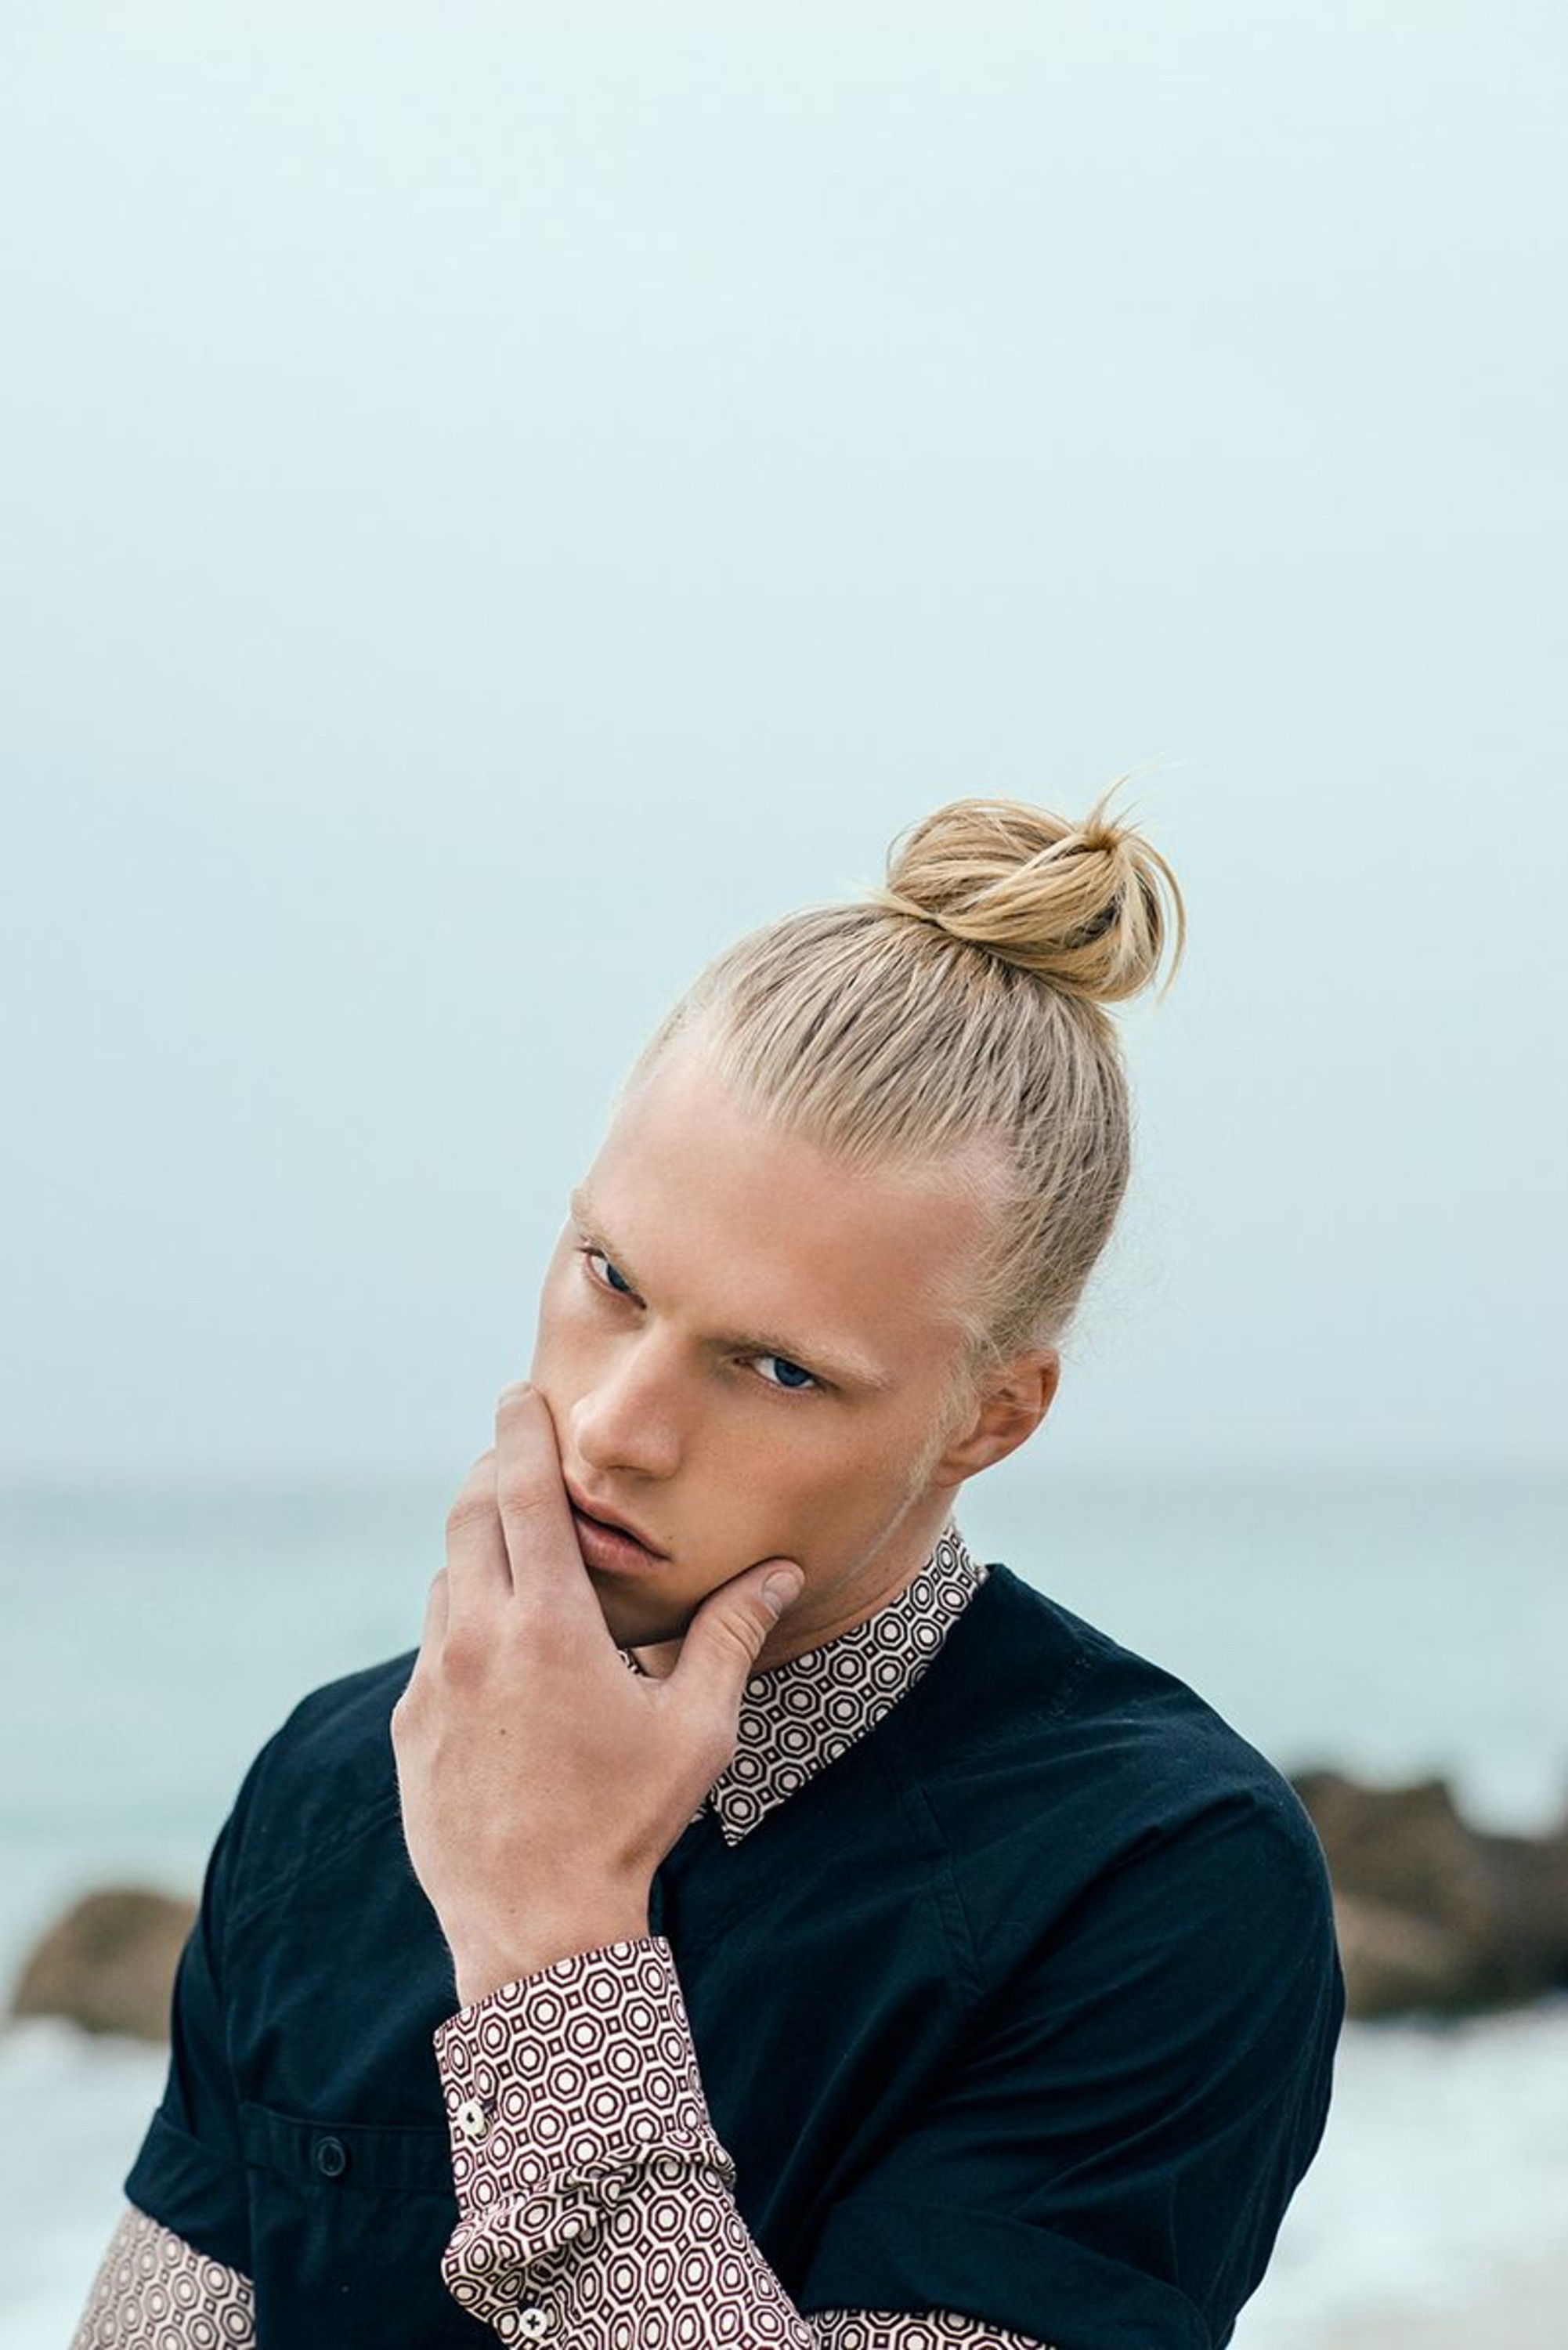 A bun hairstyle for blonde males.